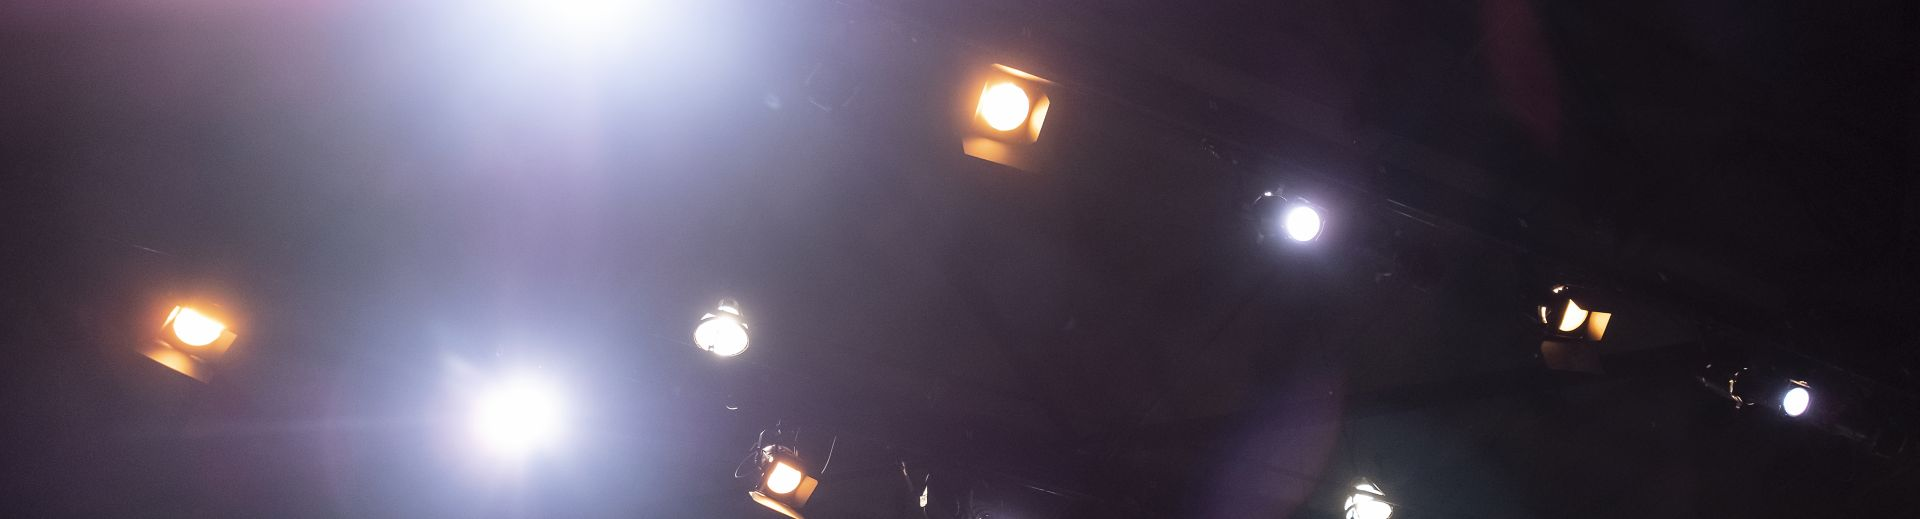 Orange and white spotlights above stage